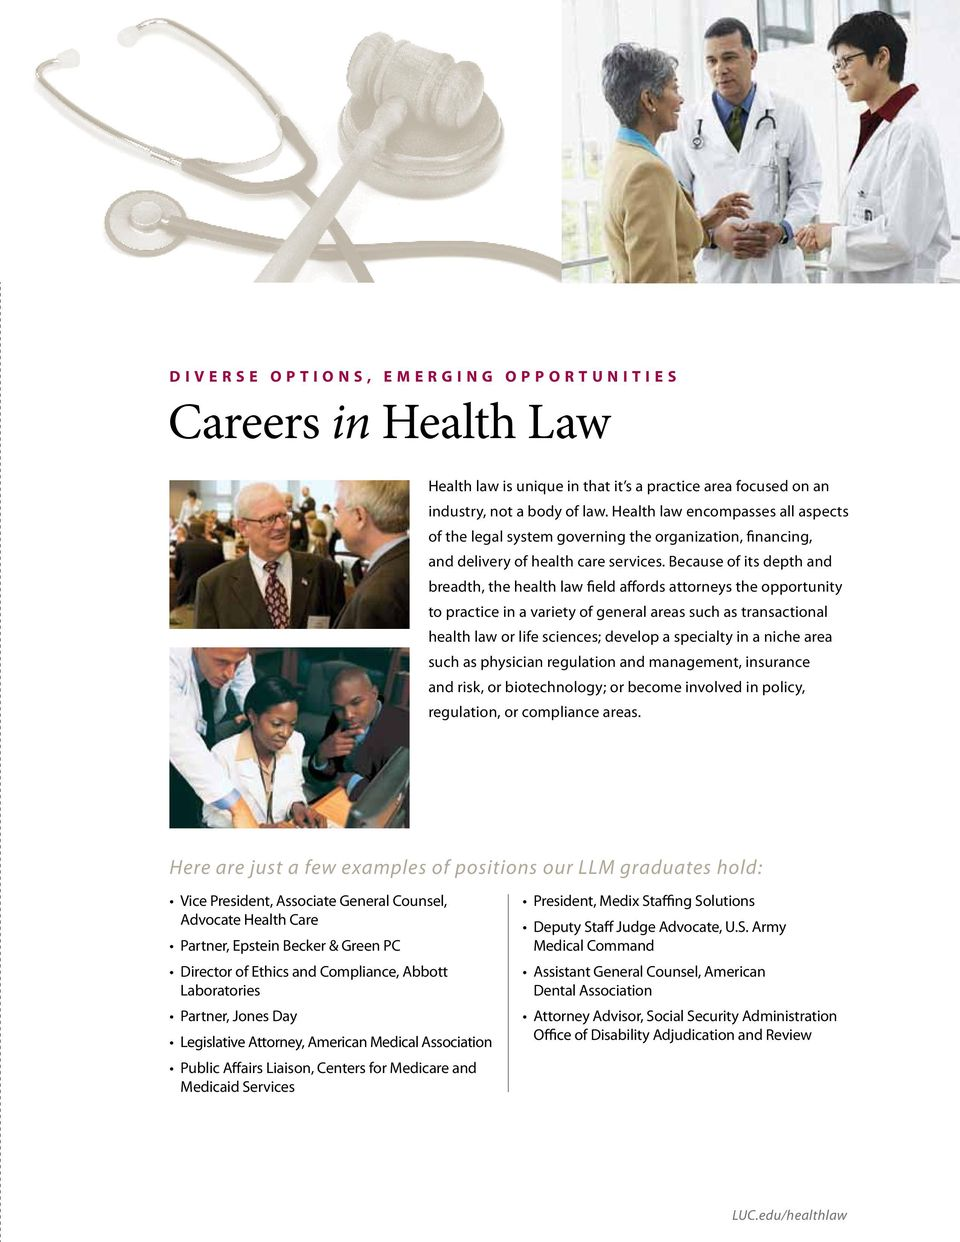 Because of its depth and breadth, the health law field affords attorneys the opportunity to practice in a variety of general areas such as transactional health law or life sciences; develop a